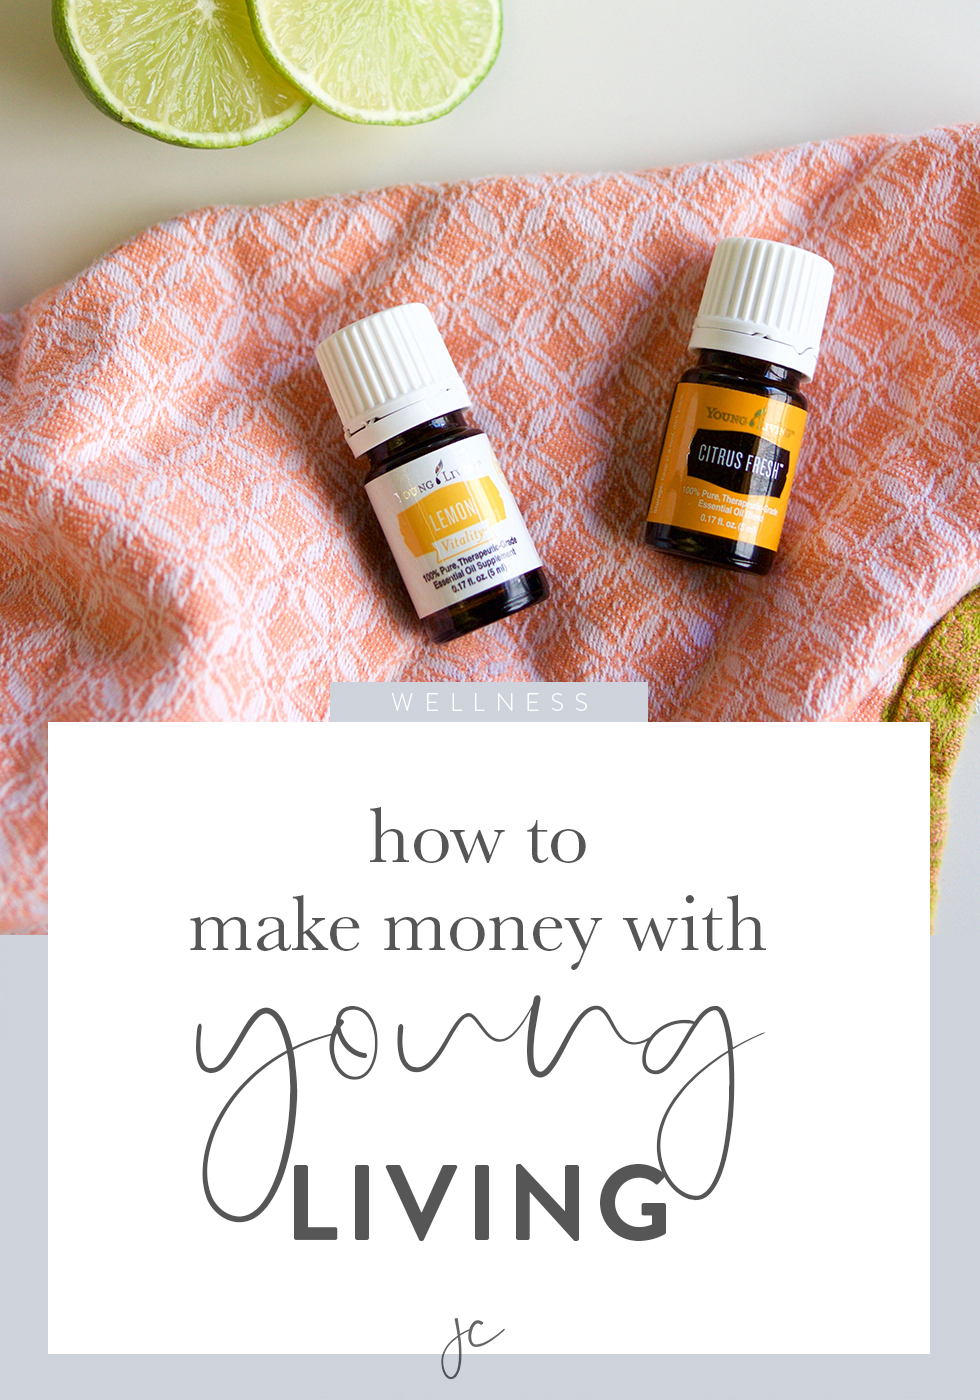 How to Make Money with Young Living